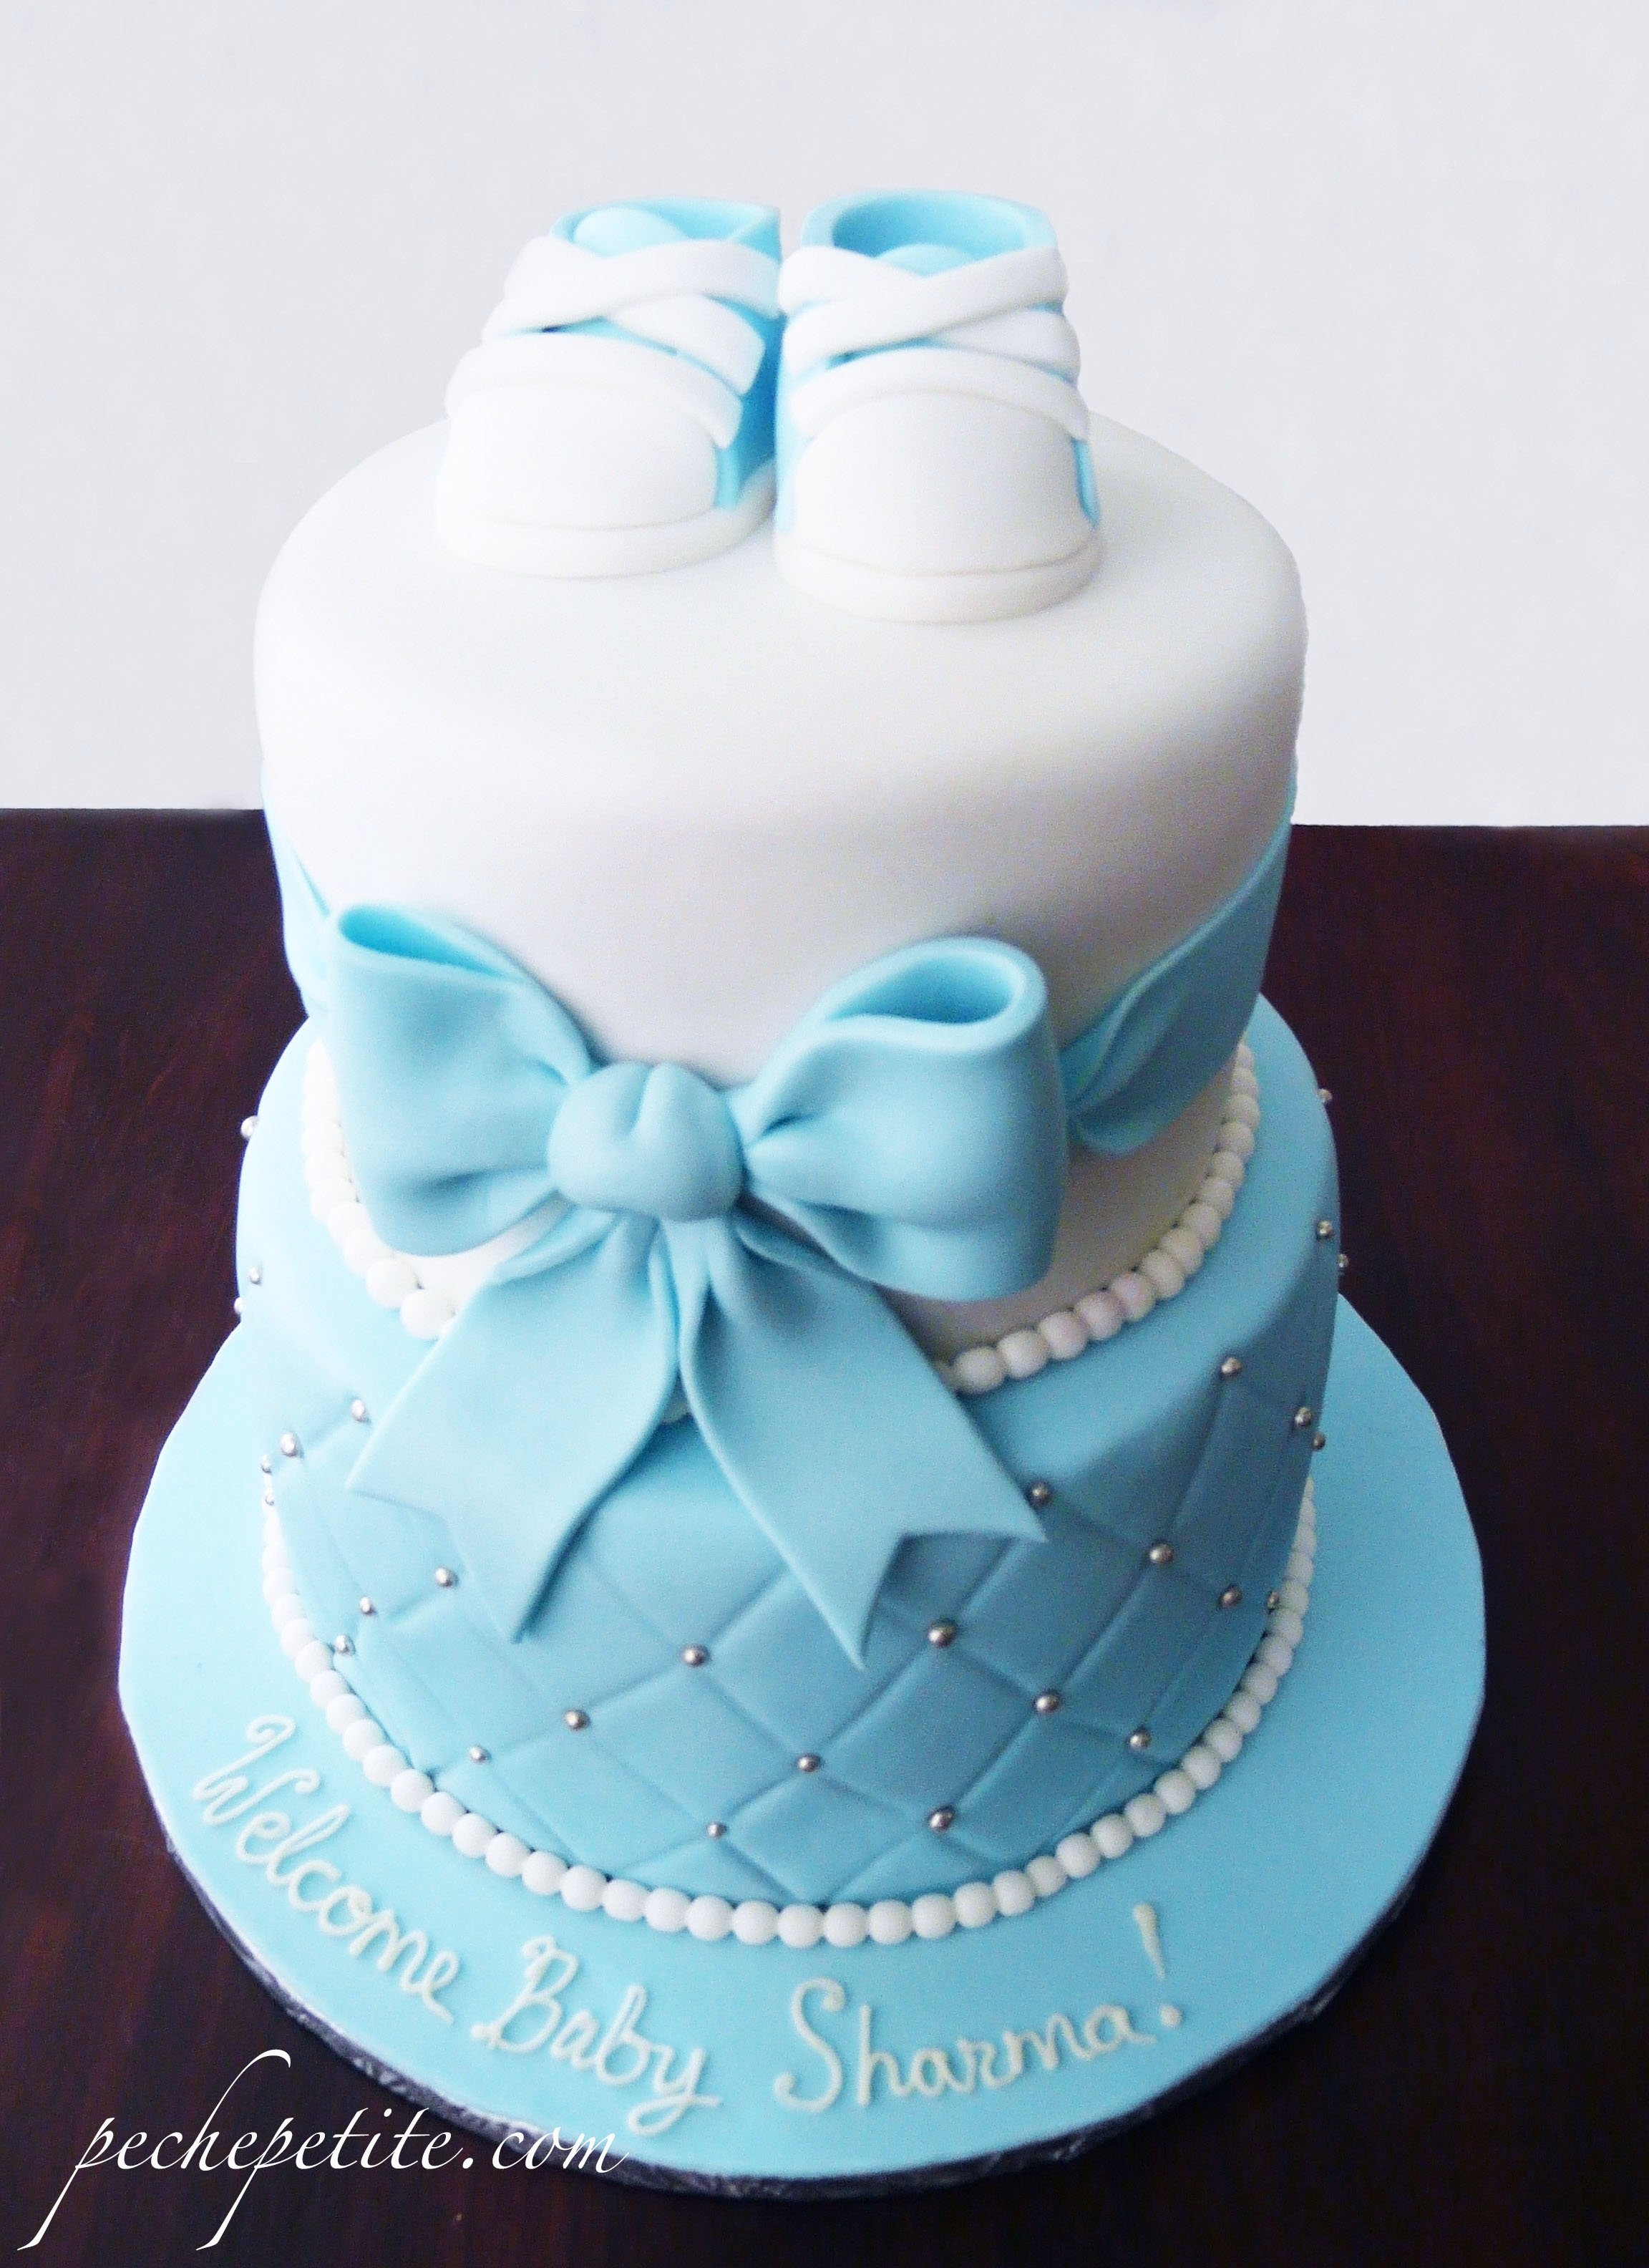 10 Awesome Baby Boy Shower Cake Ideas ideas stunning decoration baby shower cakes for boys bold idea 1